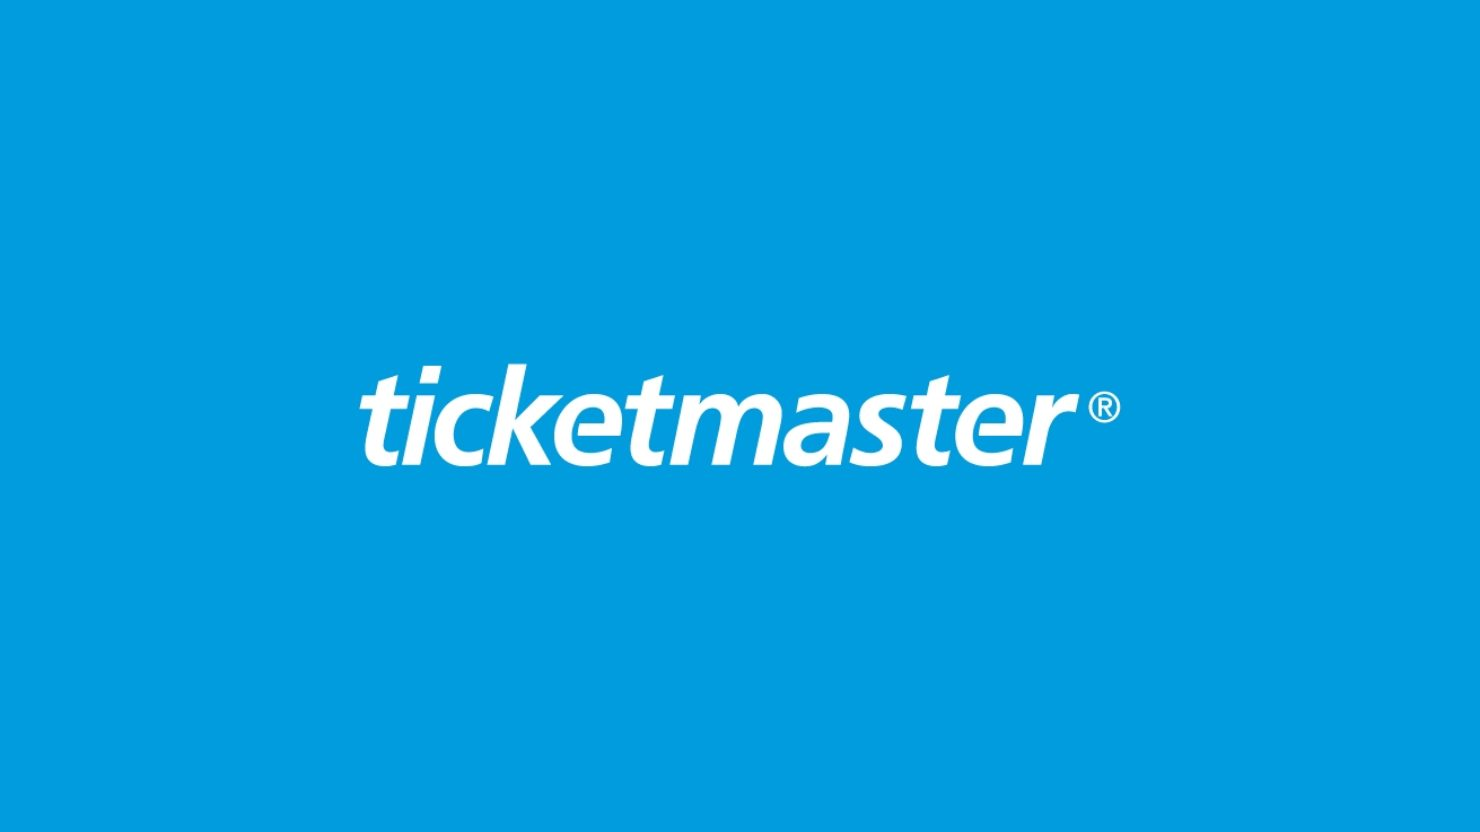 Master Ticket >> Ticketmaster Class Action Settlement Results In Free Concert Ticket Vouchers